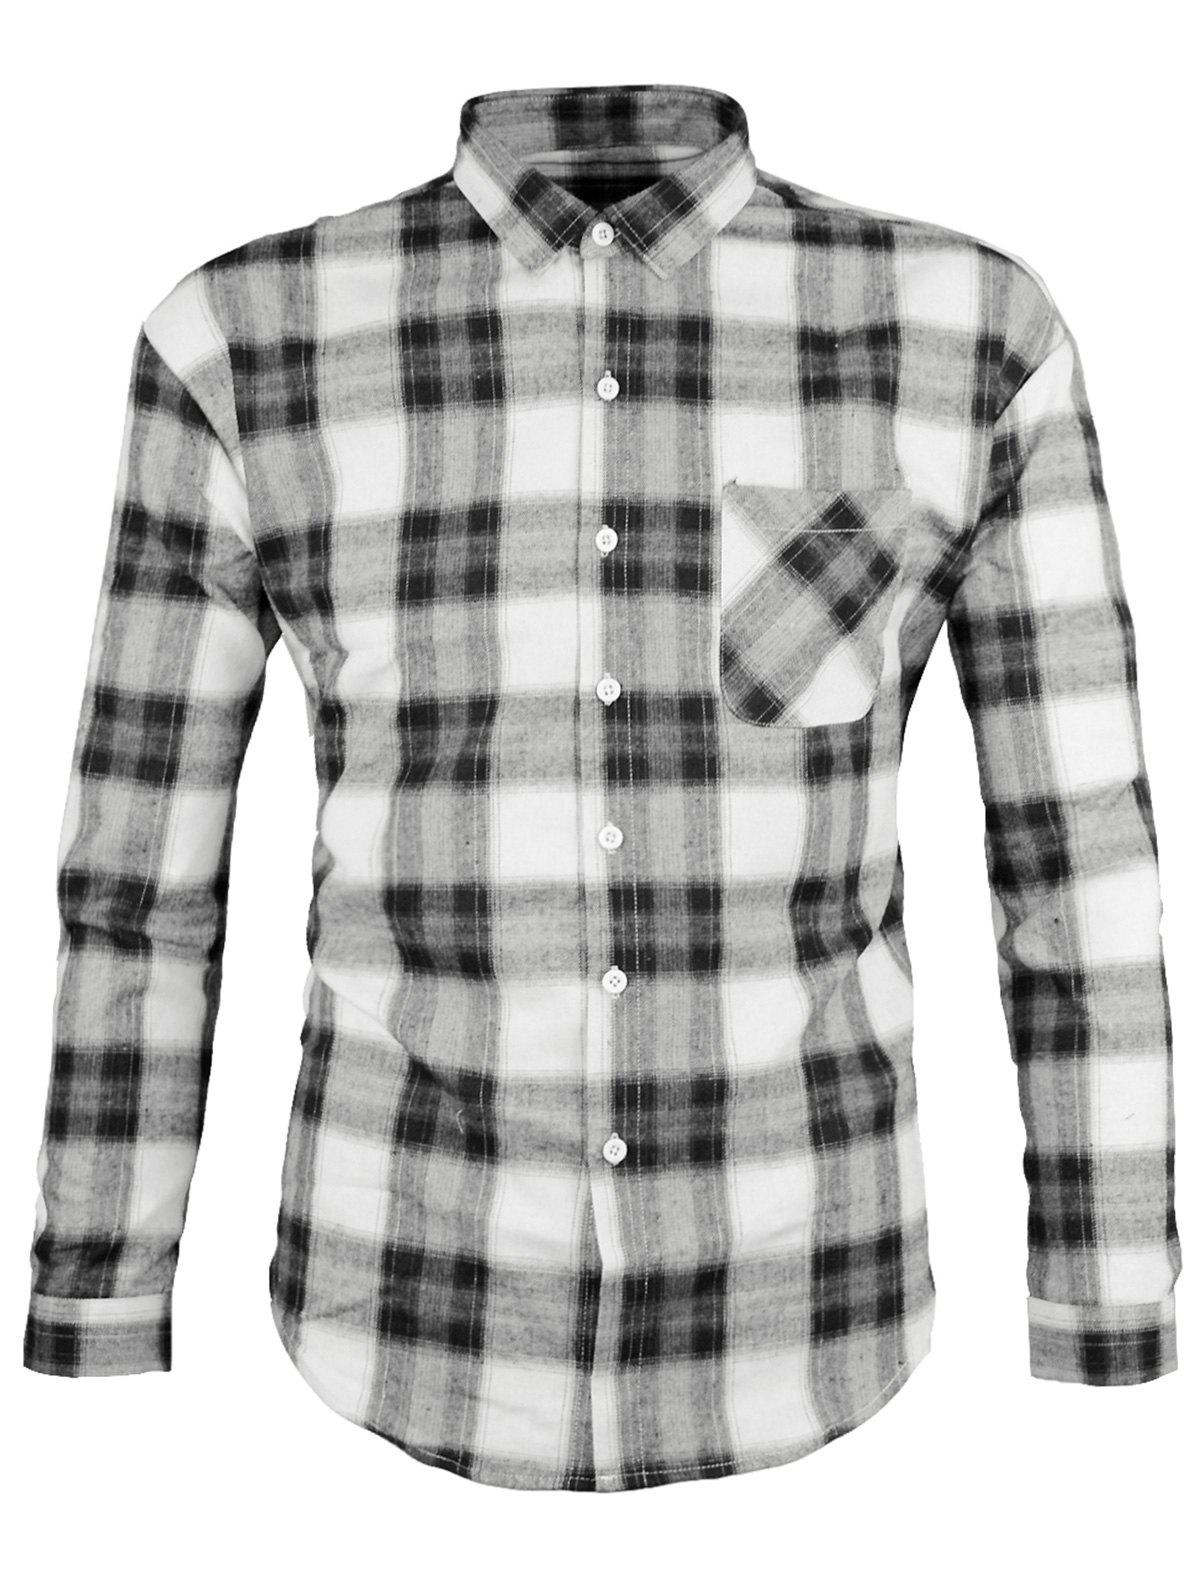 Chest Pocket Plaid Long Sleeve Shirt, Gray